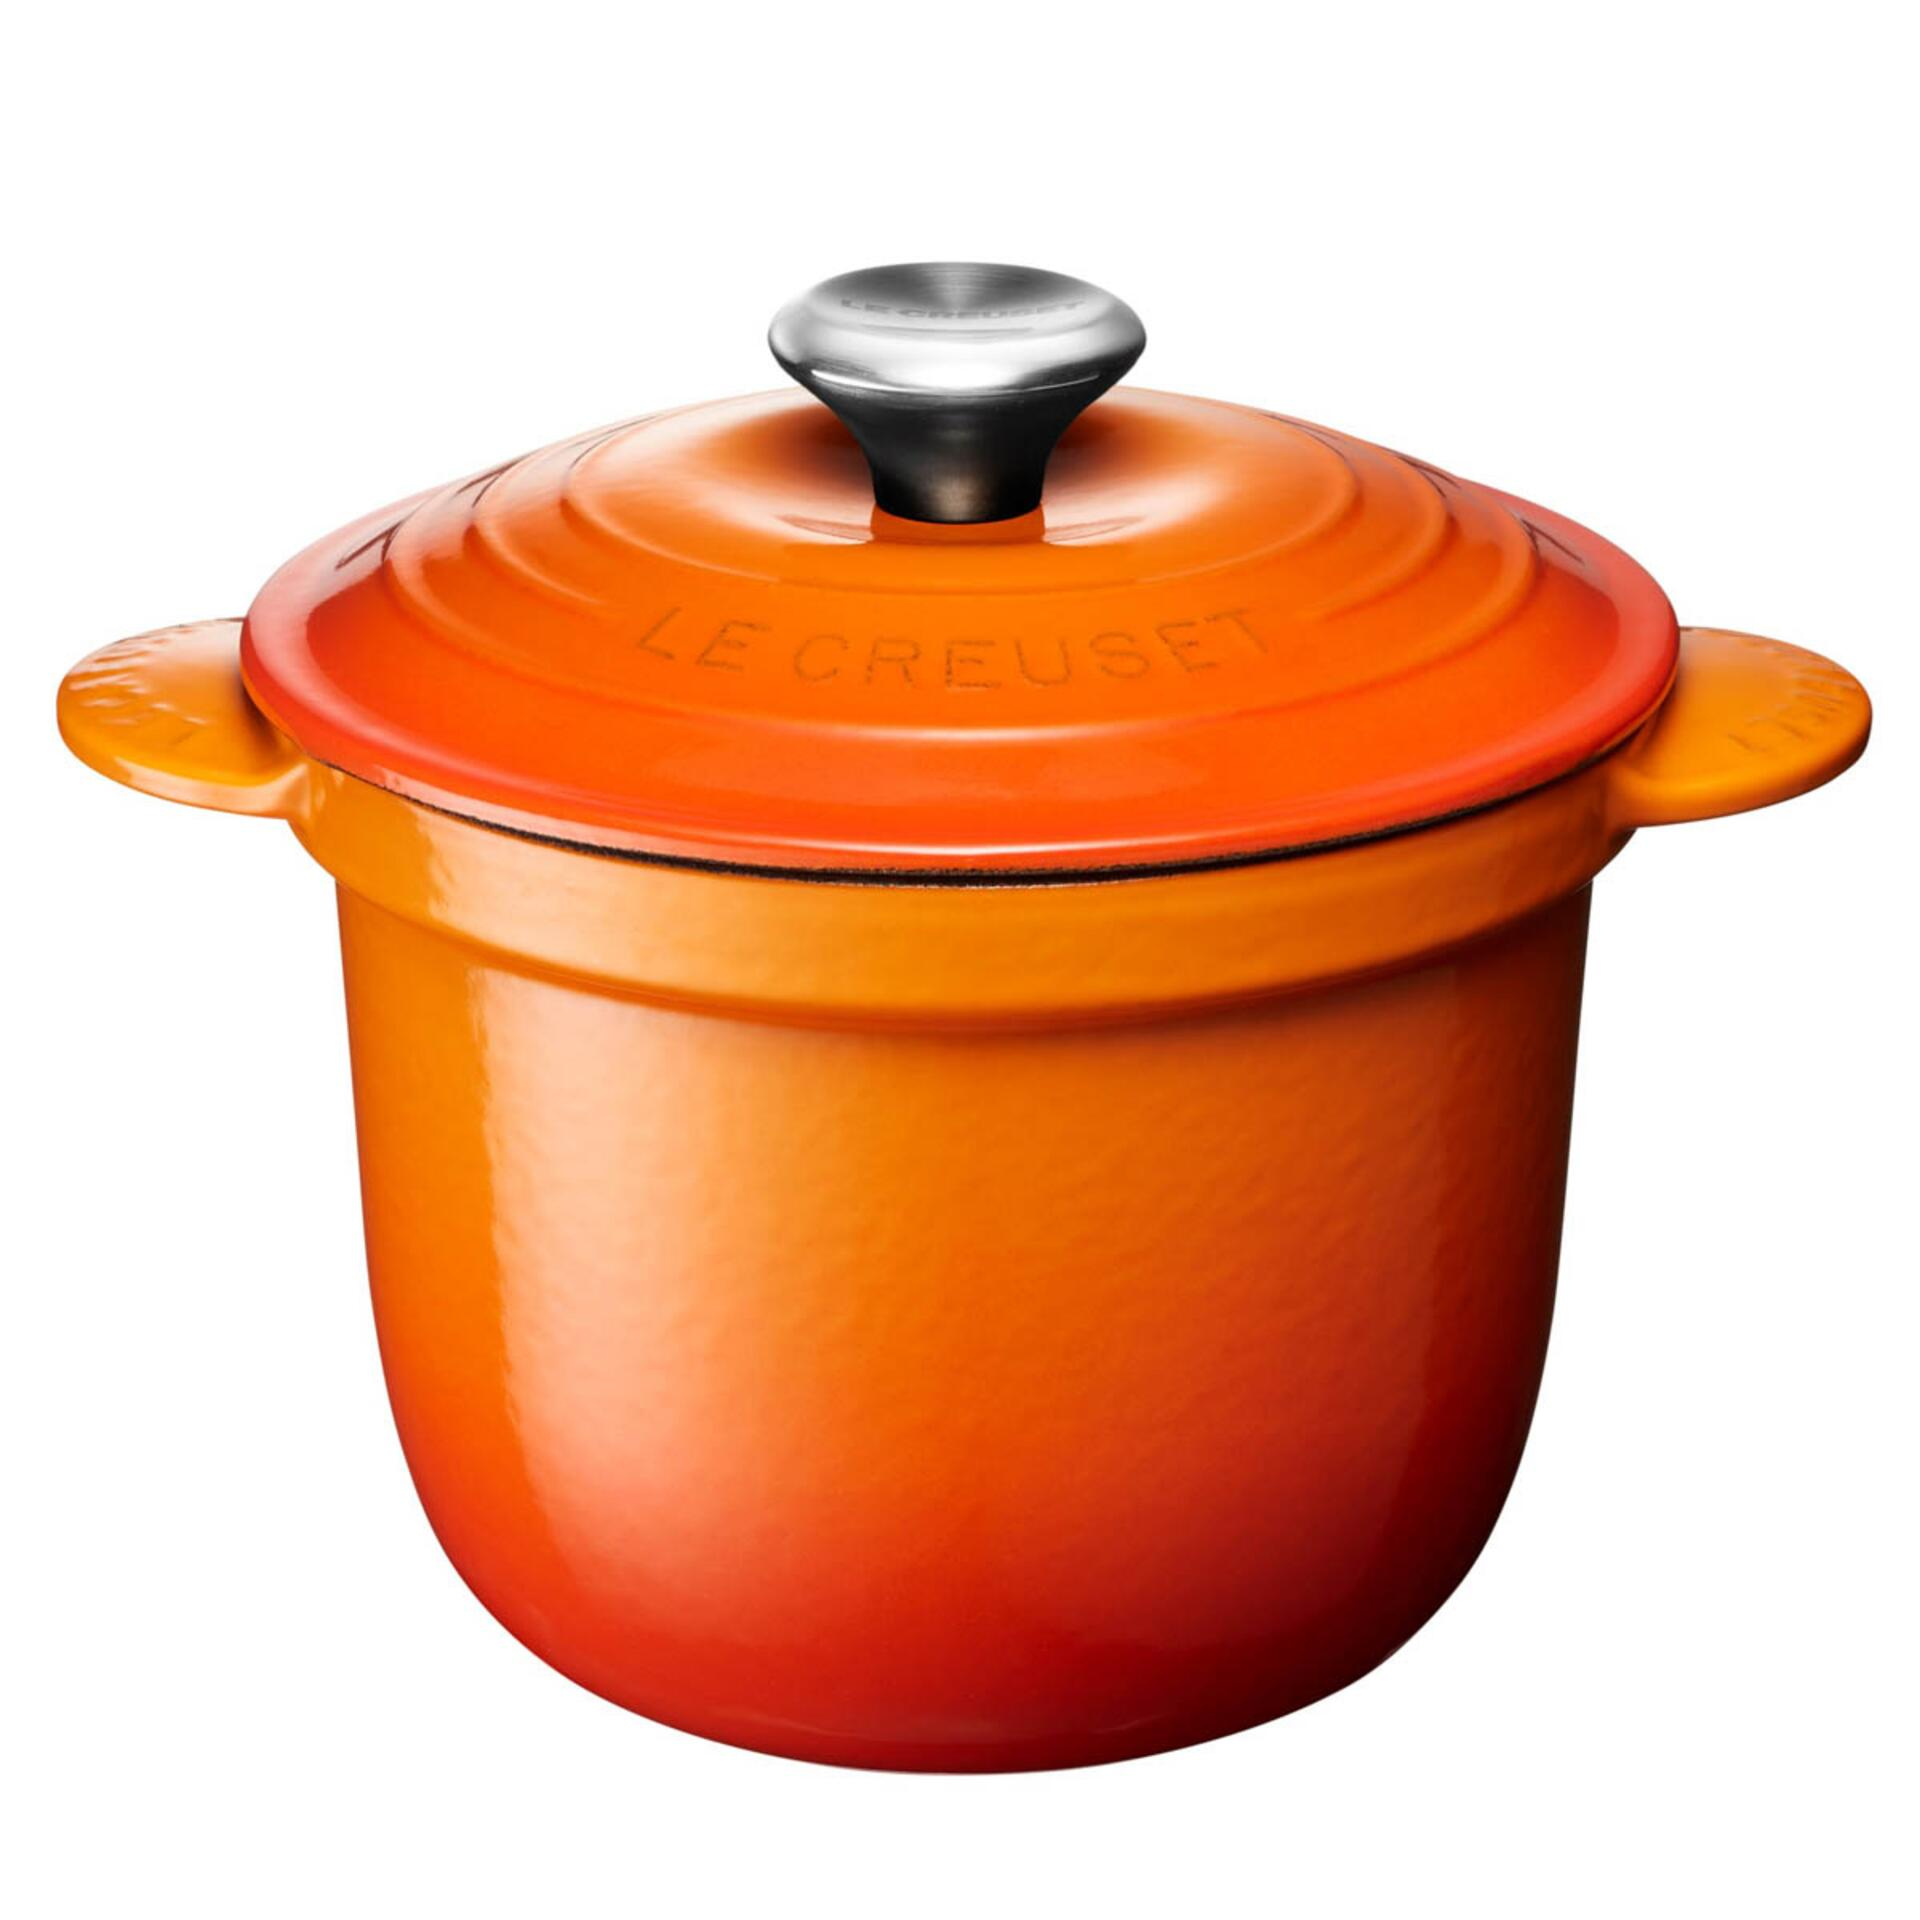 Le Creuset Cocotte Every 18 cm Ofenrot